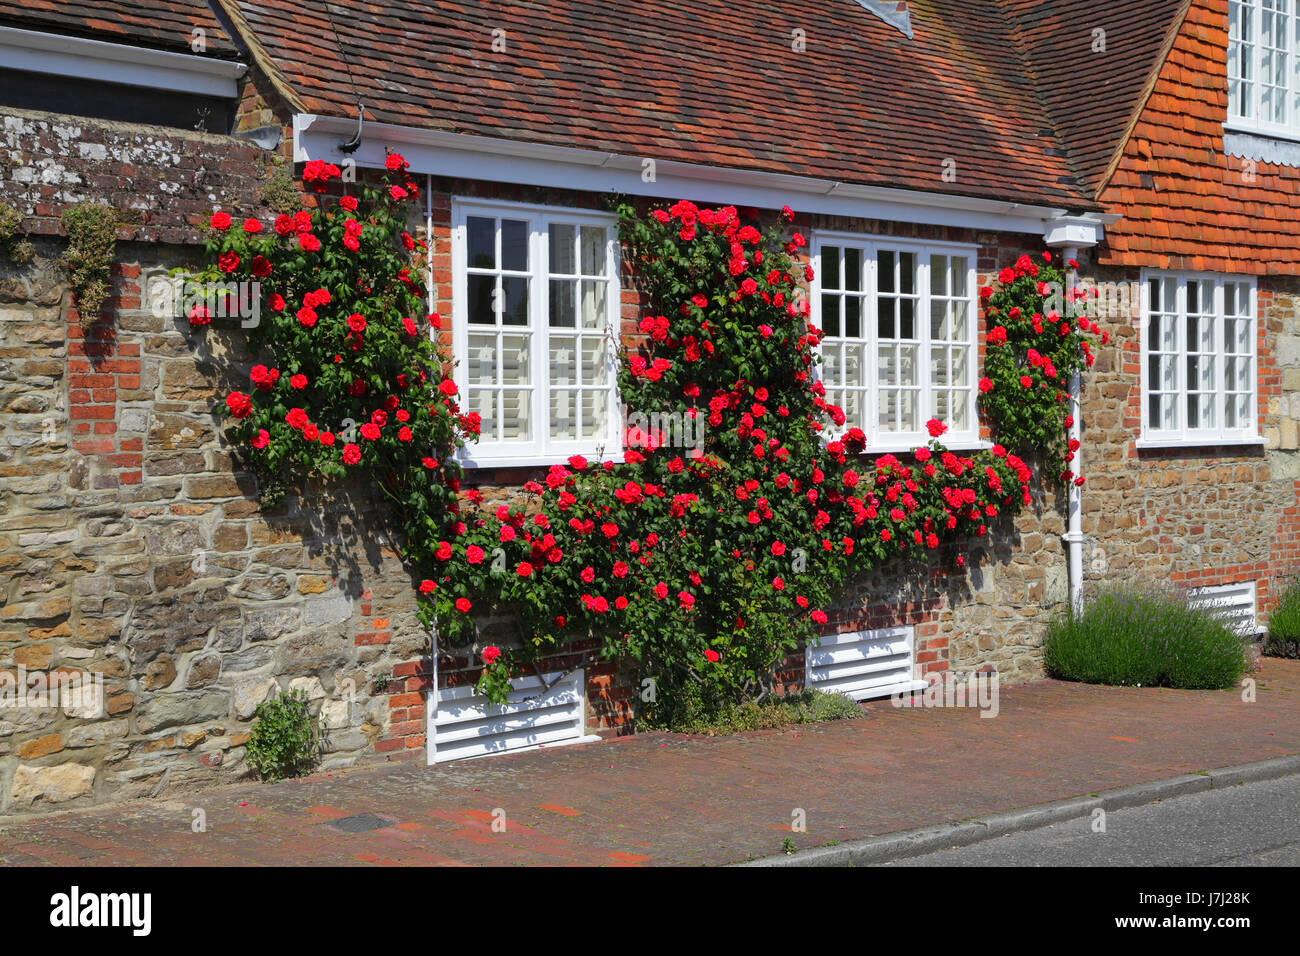 Red roses garlanding windows in Winchelsea, East Sussex, UK, GB - Stock Image